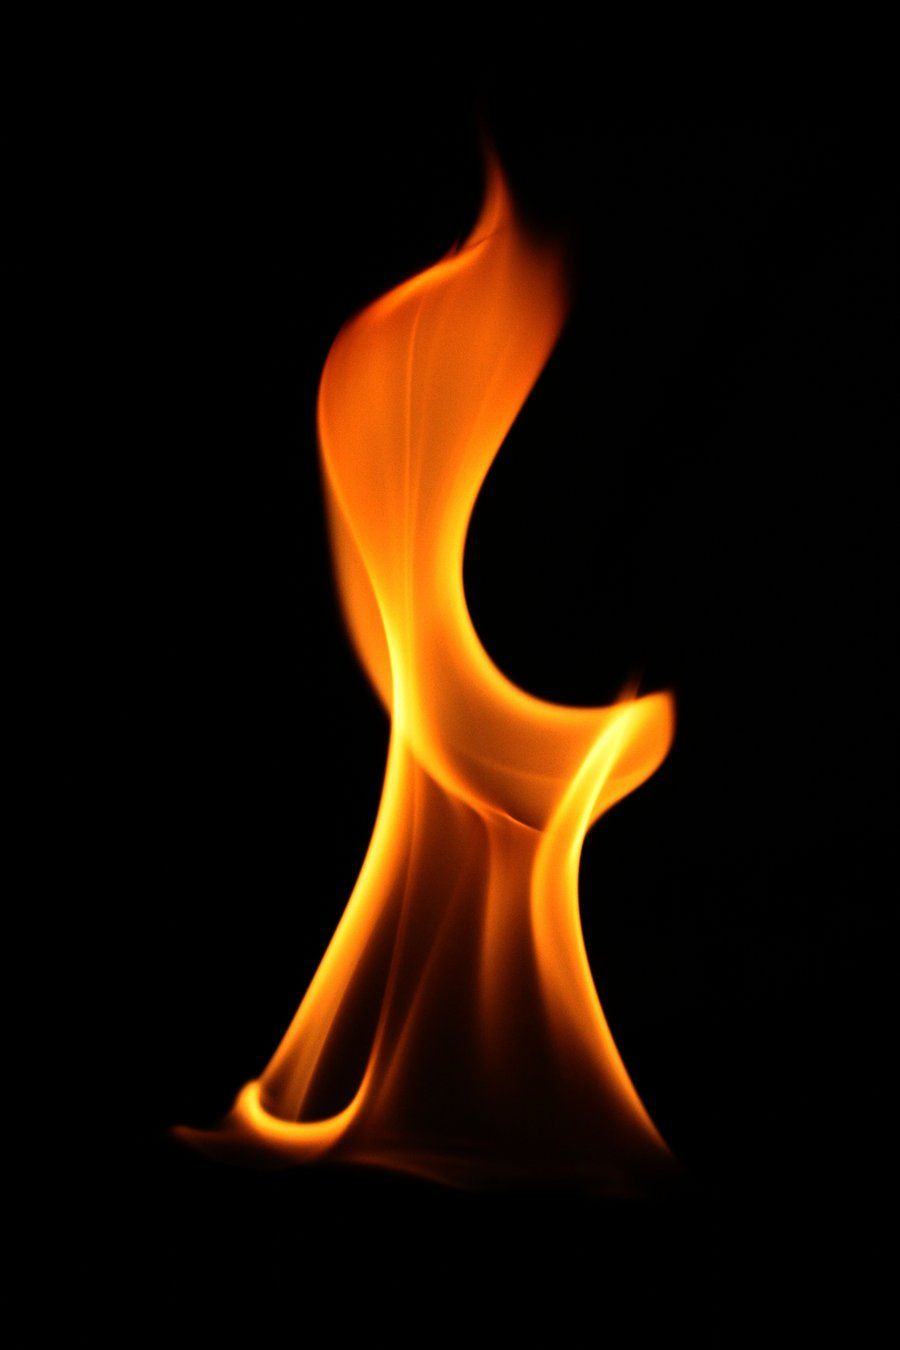 Flame On Fire By Scharx On Deviantart Fire Photography Fire